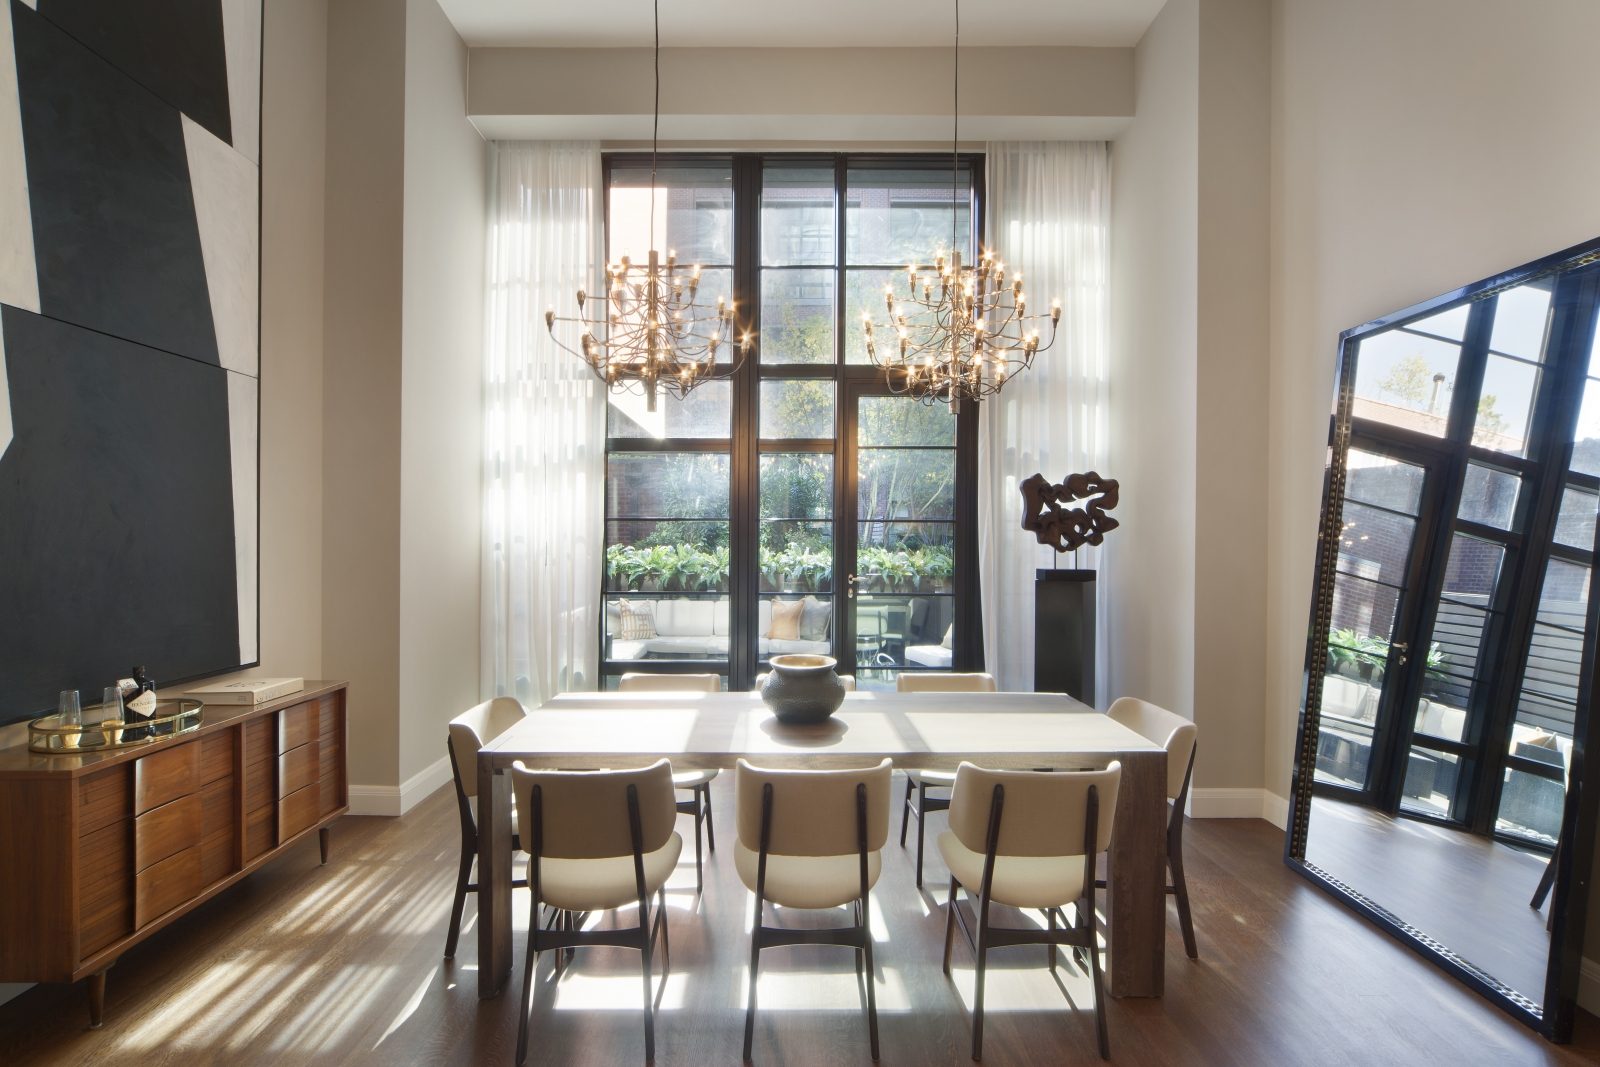 Dining Room Staging Ideas Part - 26: Dining Room AFTER: